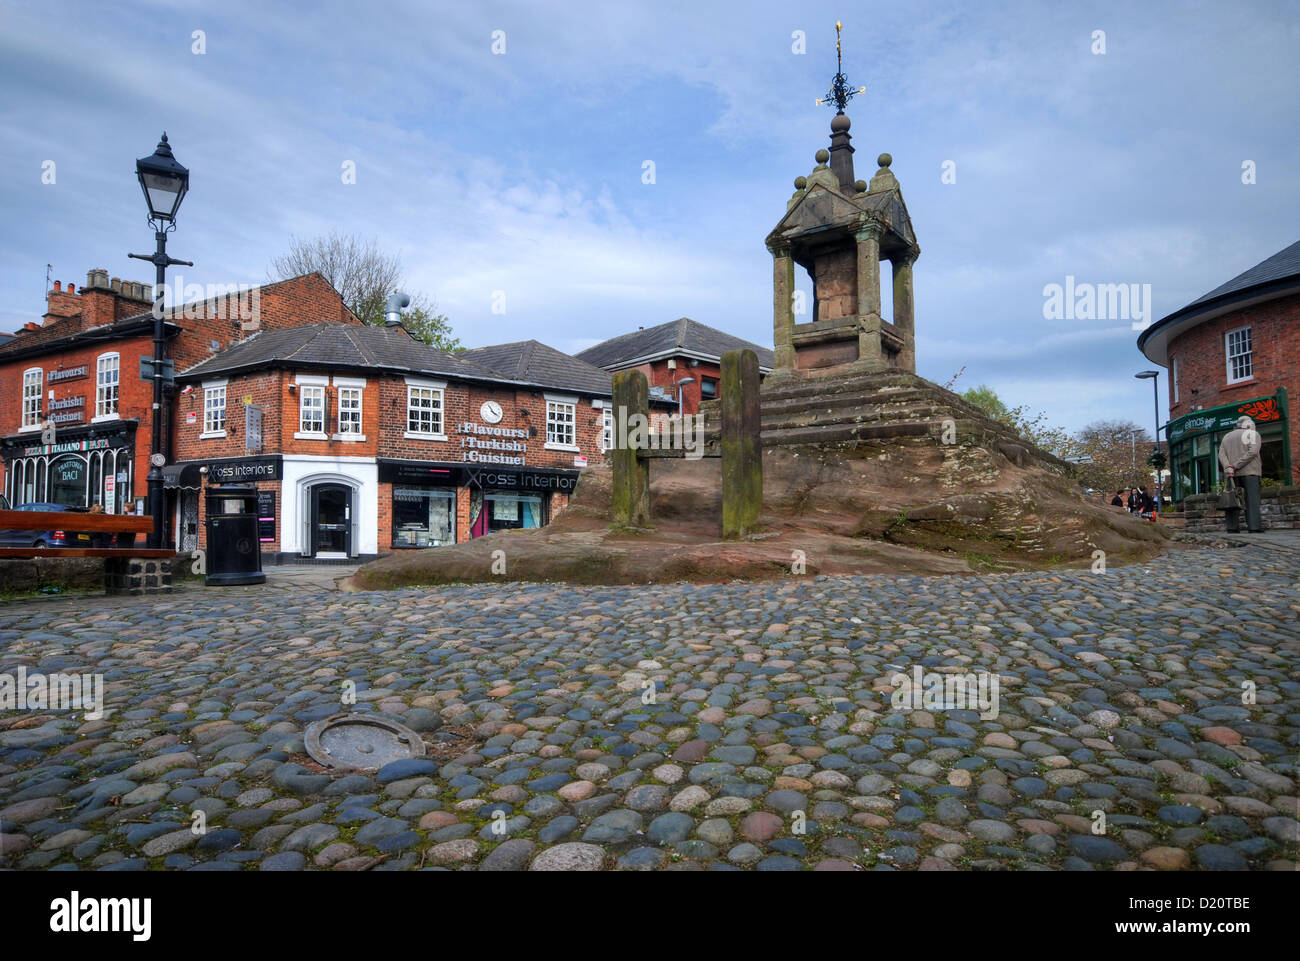 The Market Cross in Lymm, Cheshire - Stock Image